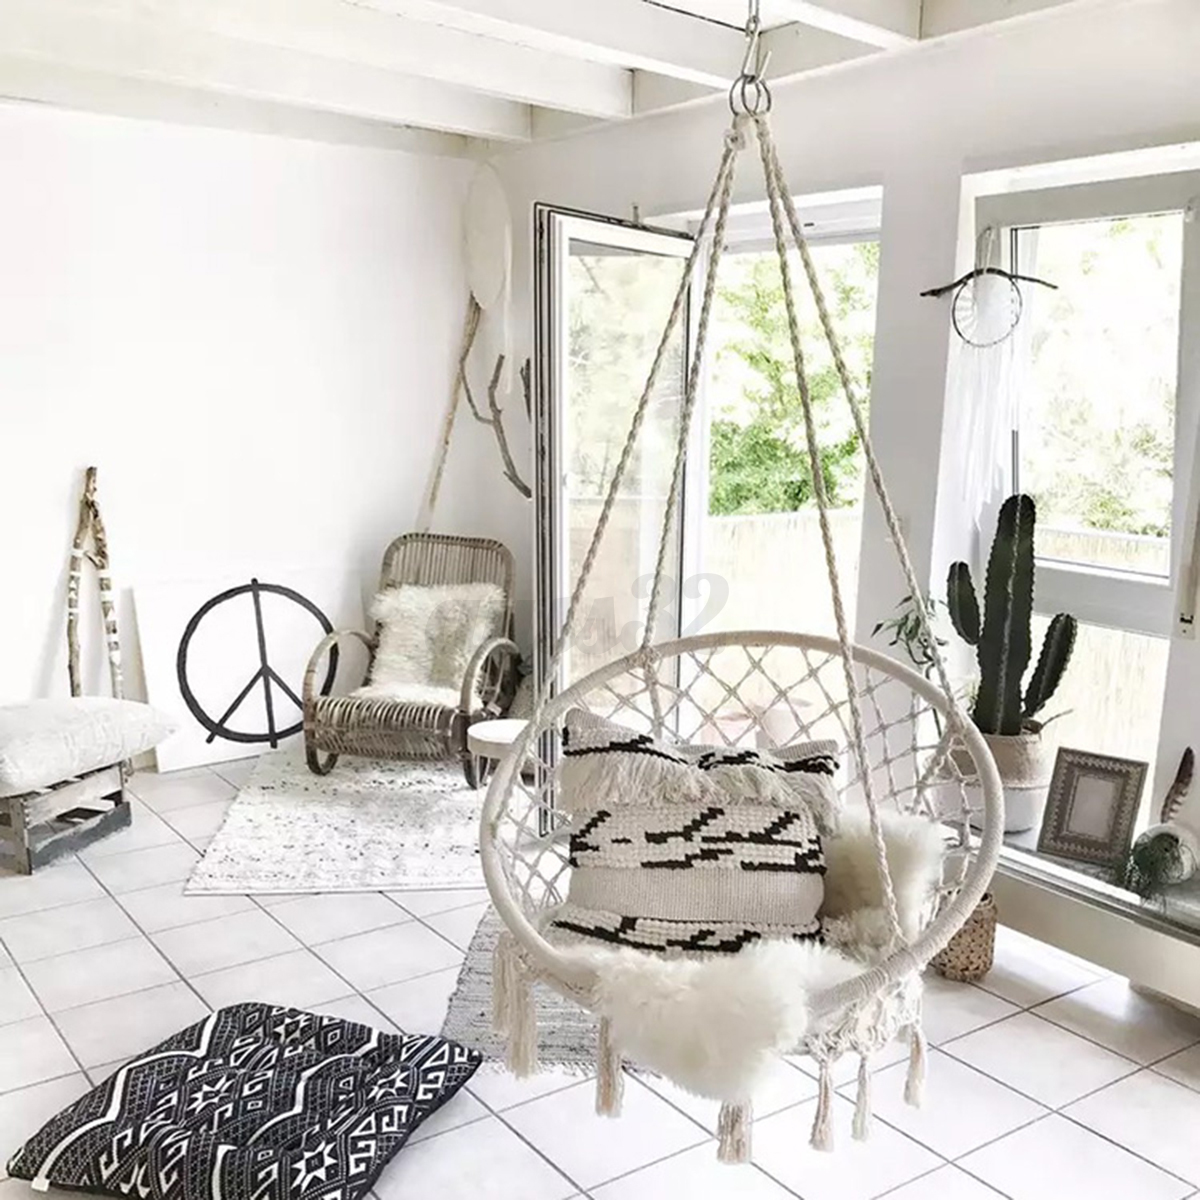 Beige hanging cotton rope macrame hammock chair swing for How to hang a hammock in a room